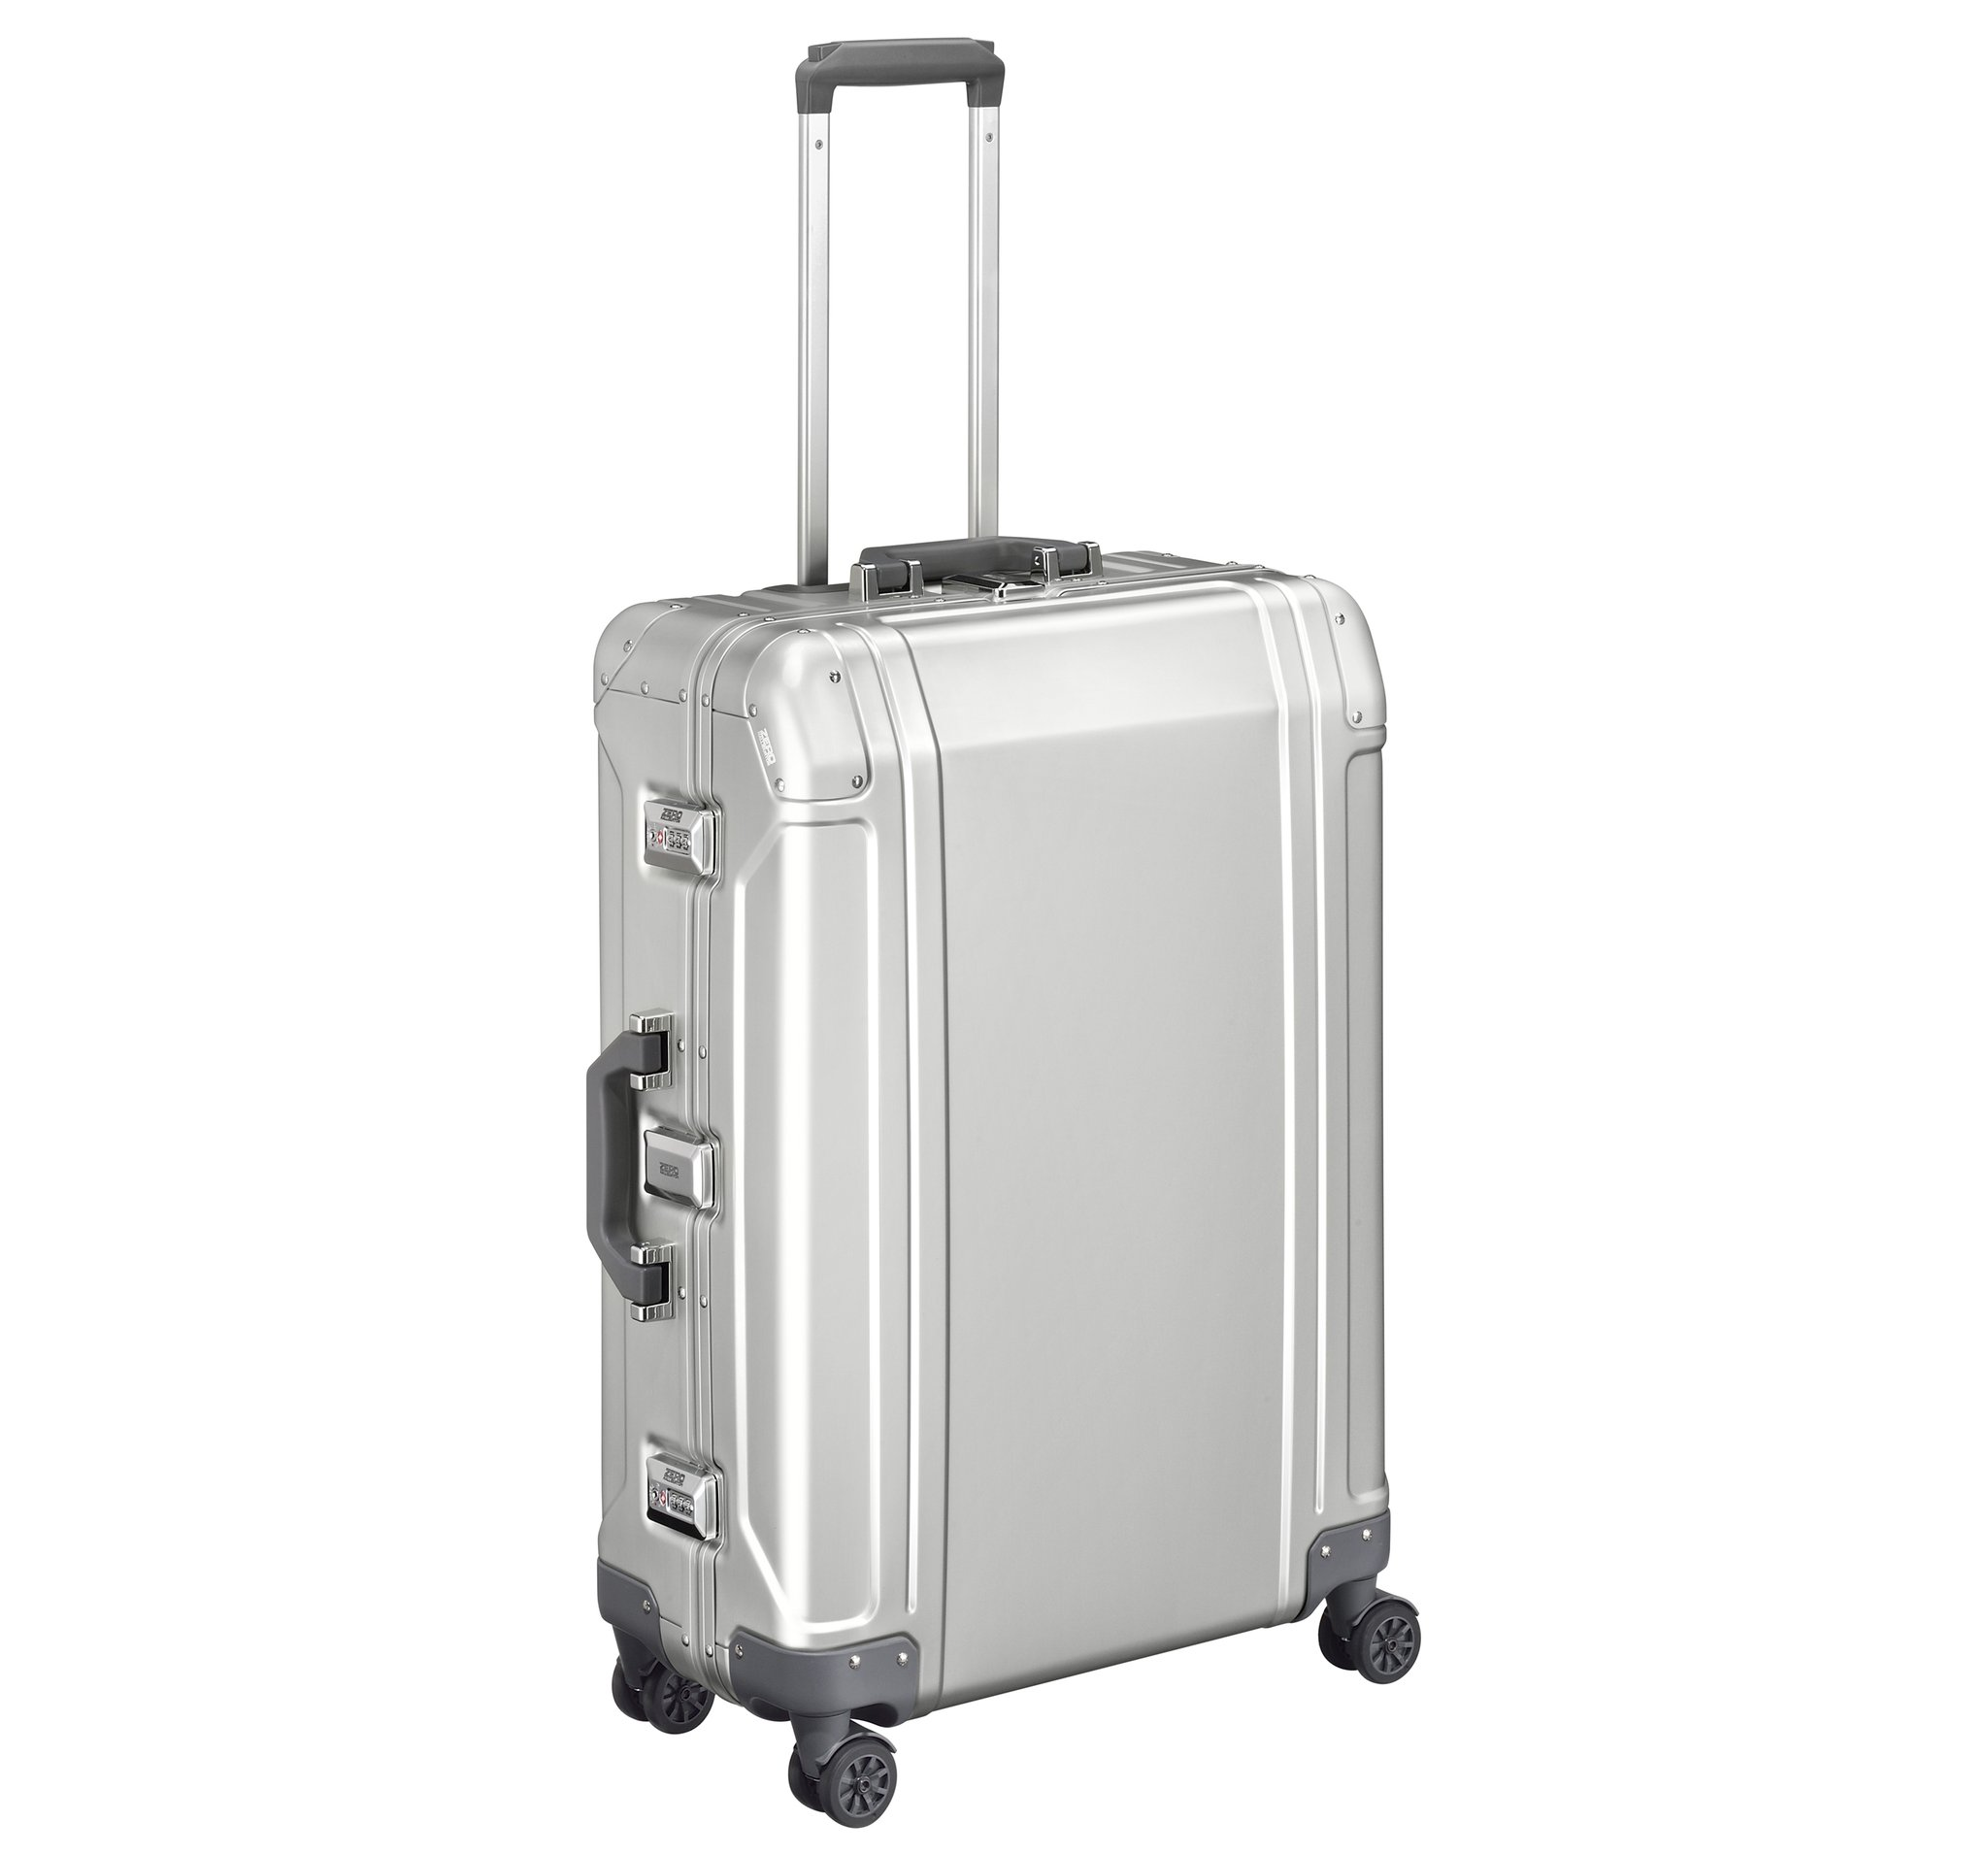 "Geo Aluminum 3.0 - 26"" 4-Wheel Spinner Travel Case by Zero Halliburton (Color: Silver)"